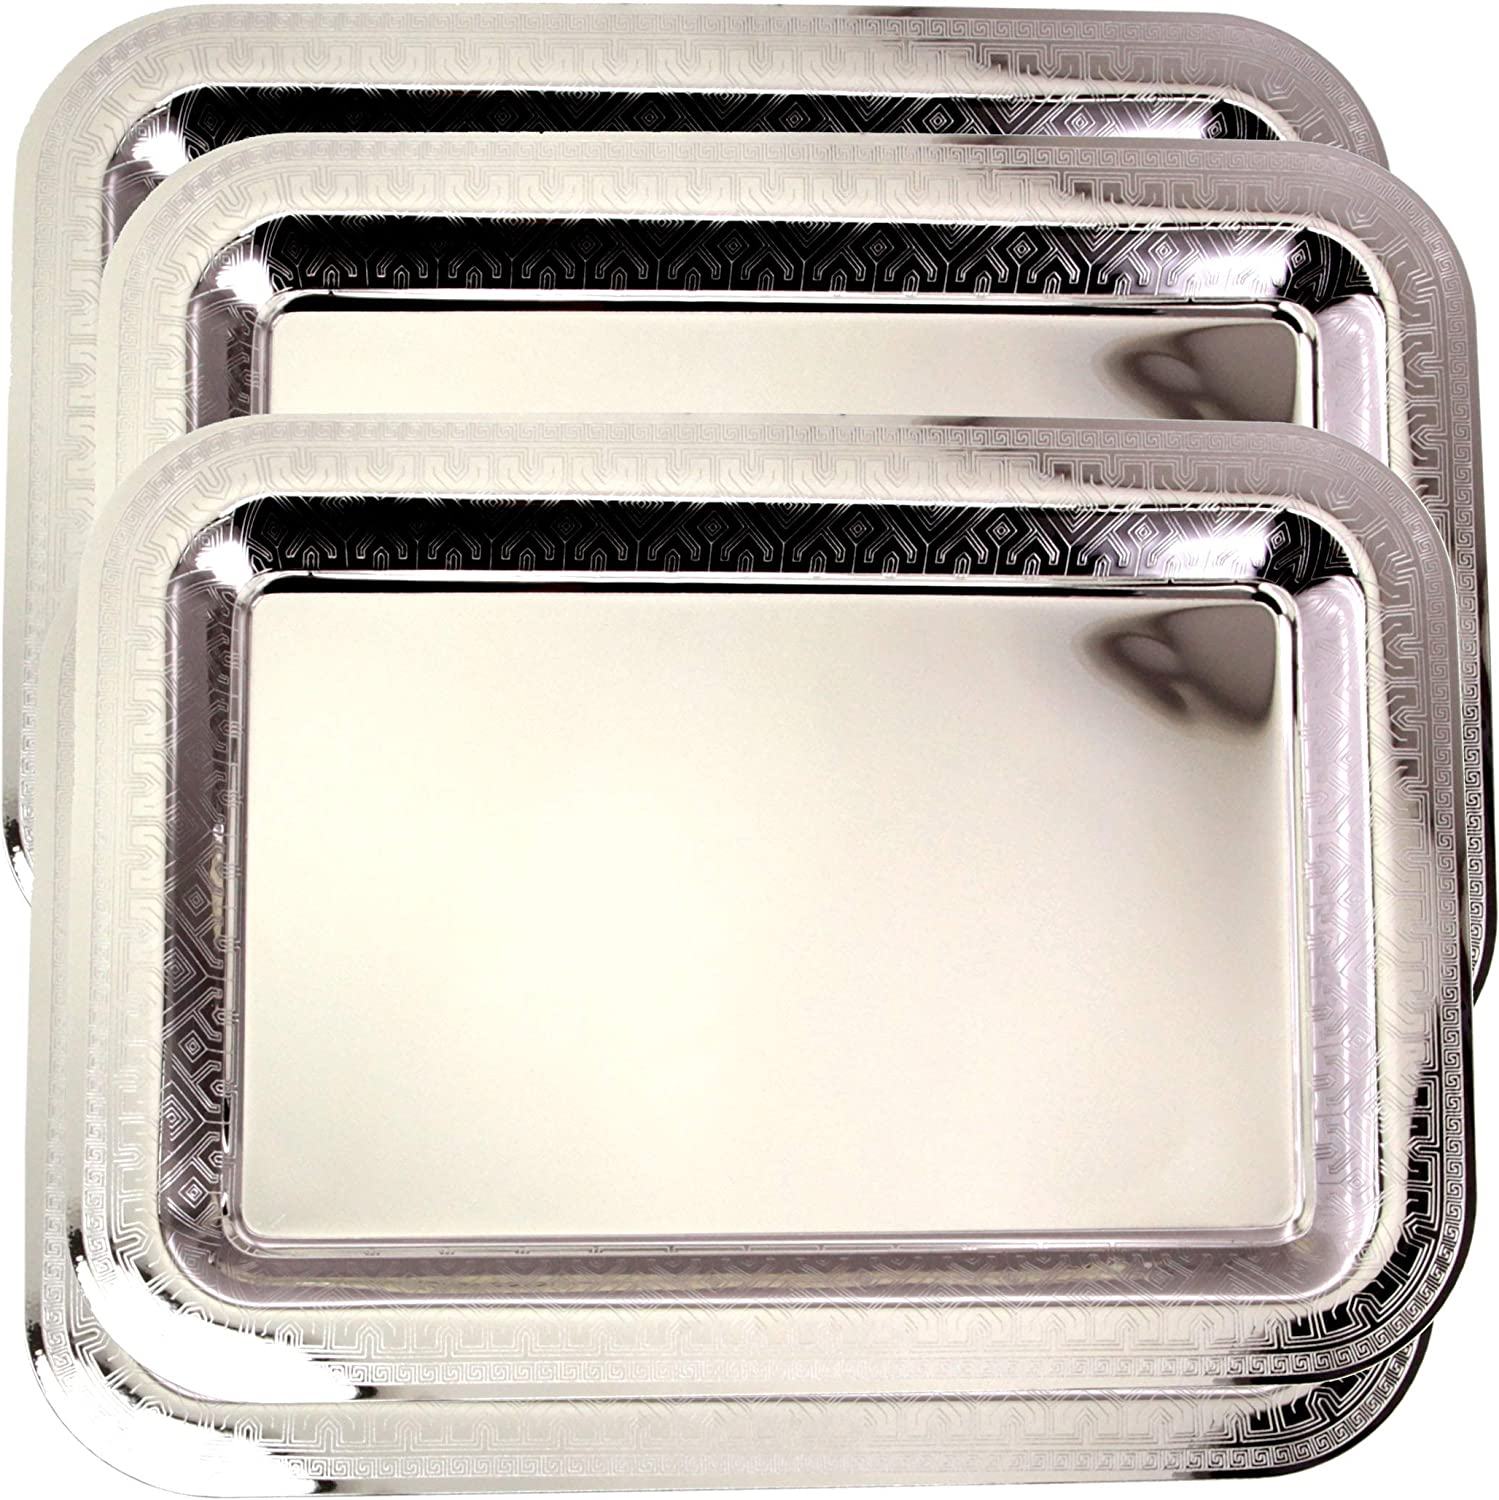 Maro Megastore (Pack of 4) 17 Inch x 12.2 Inch Oblong Chrome Plated Mirror Serving Tray Stylish Design Floral Engraved Edge Decorative Party Birthday Wedding Dessert Buffet Wine Platter Plate CC-812